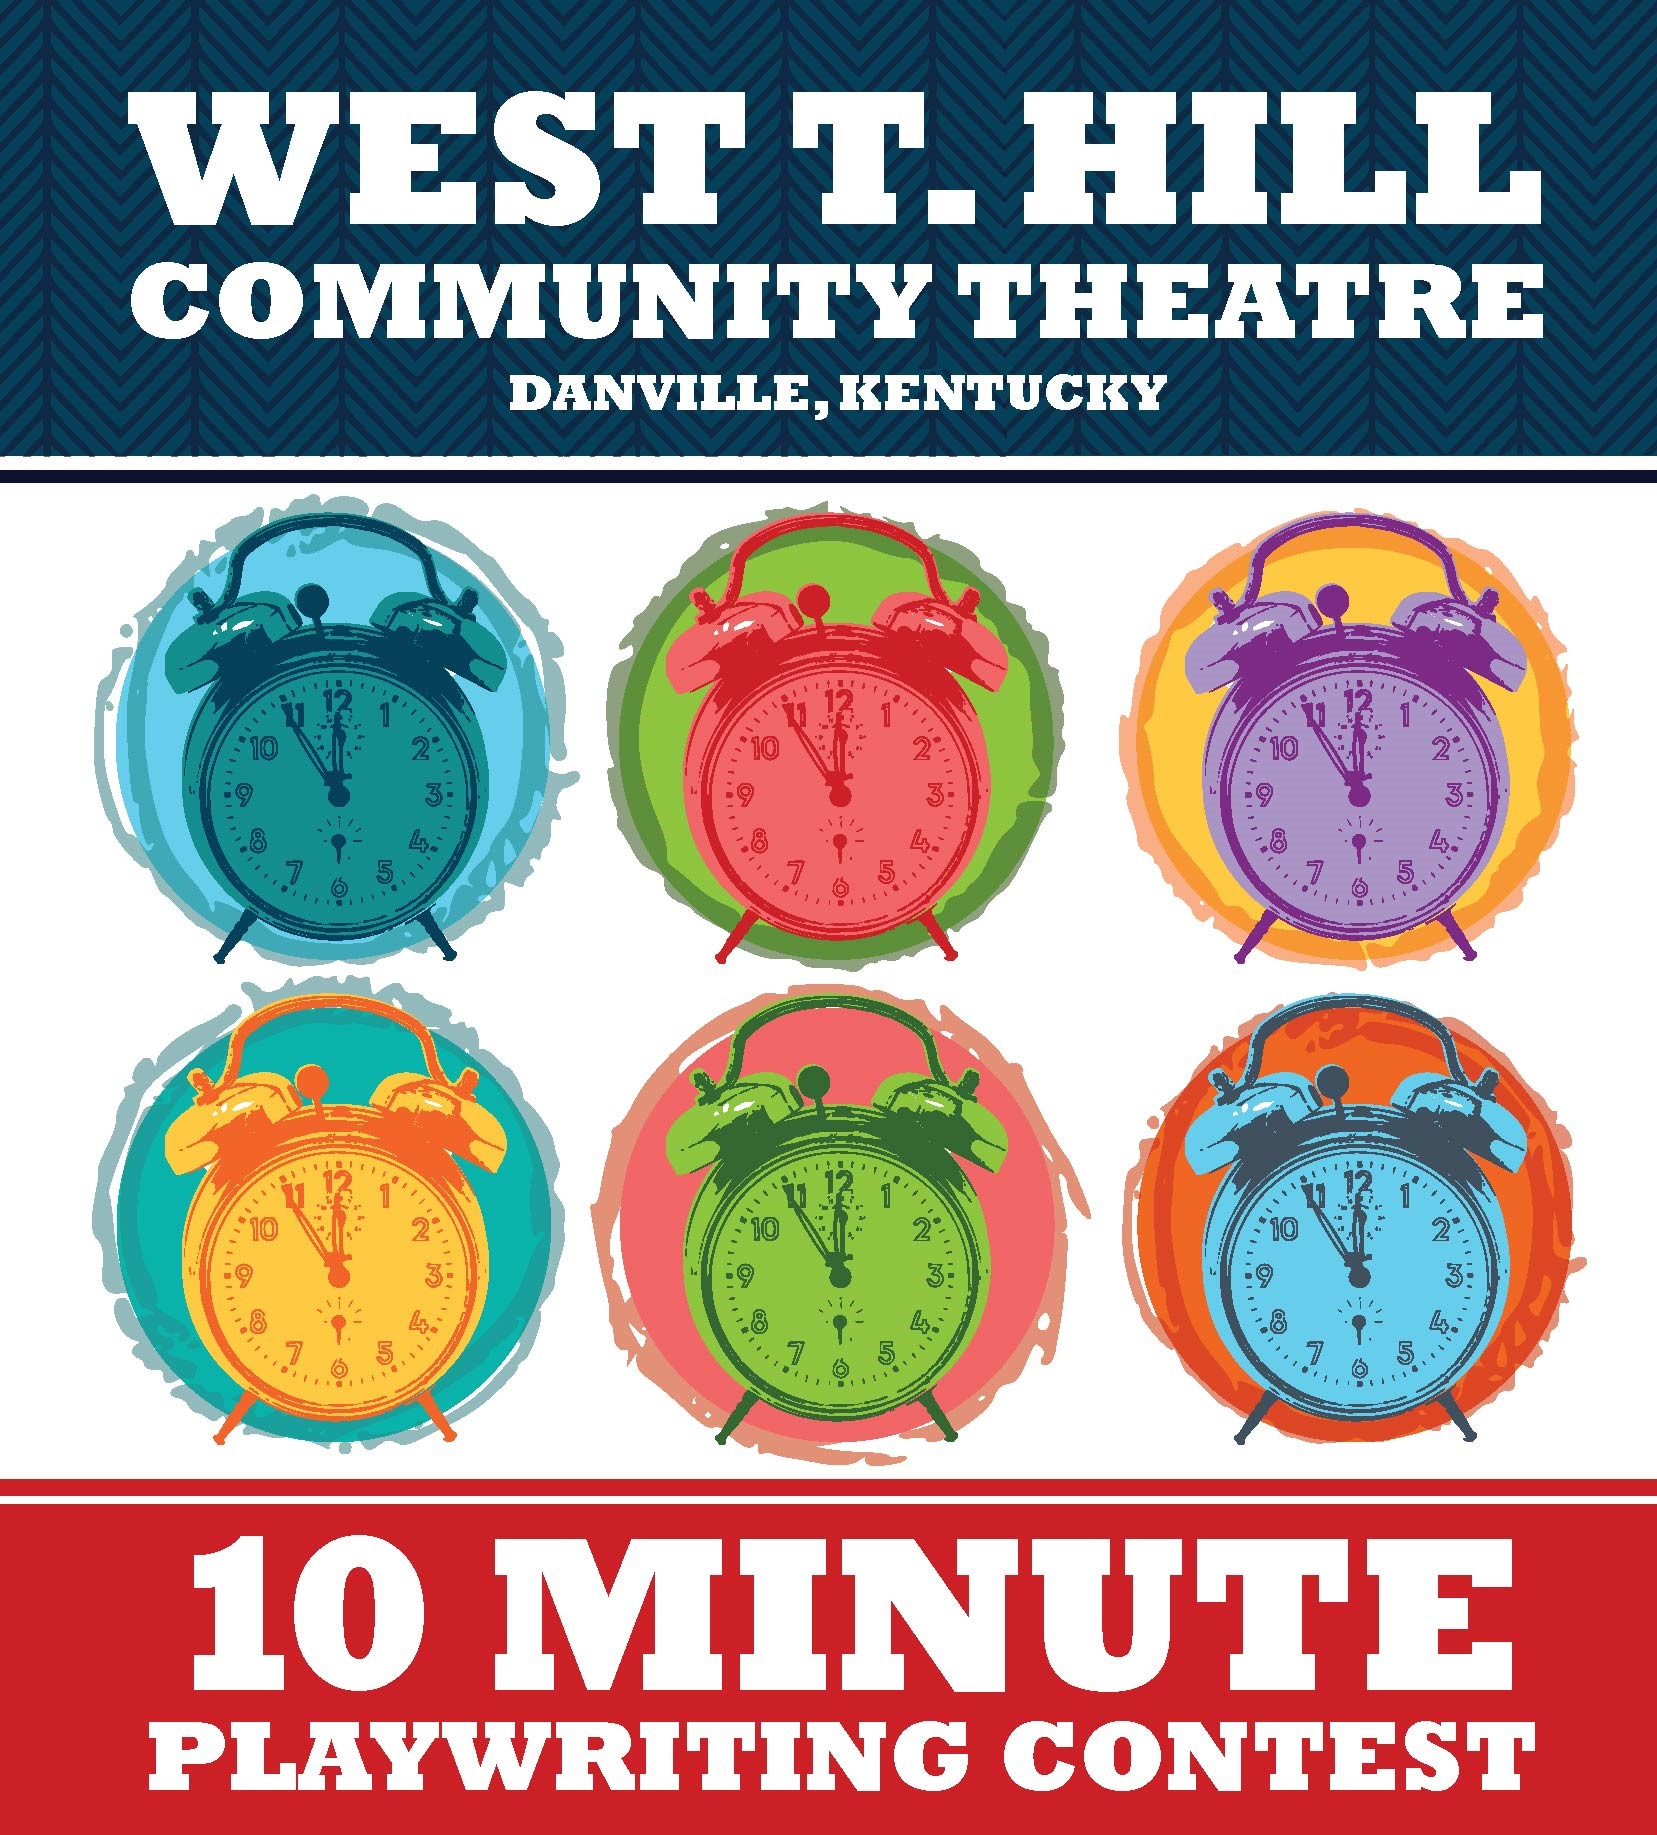 10 Minute Playwriting Contest – West T  Hill Community Theatre